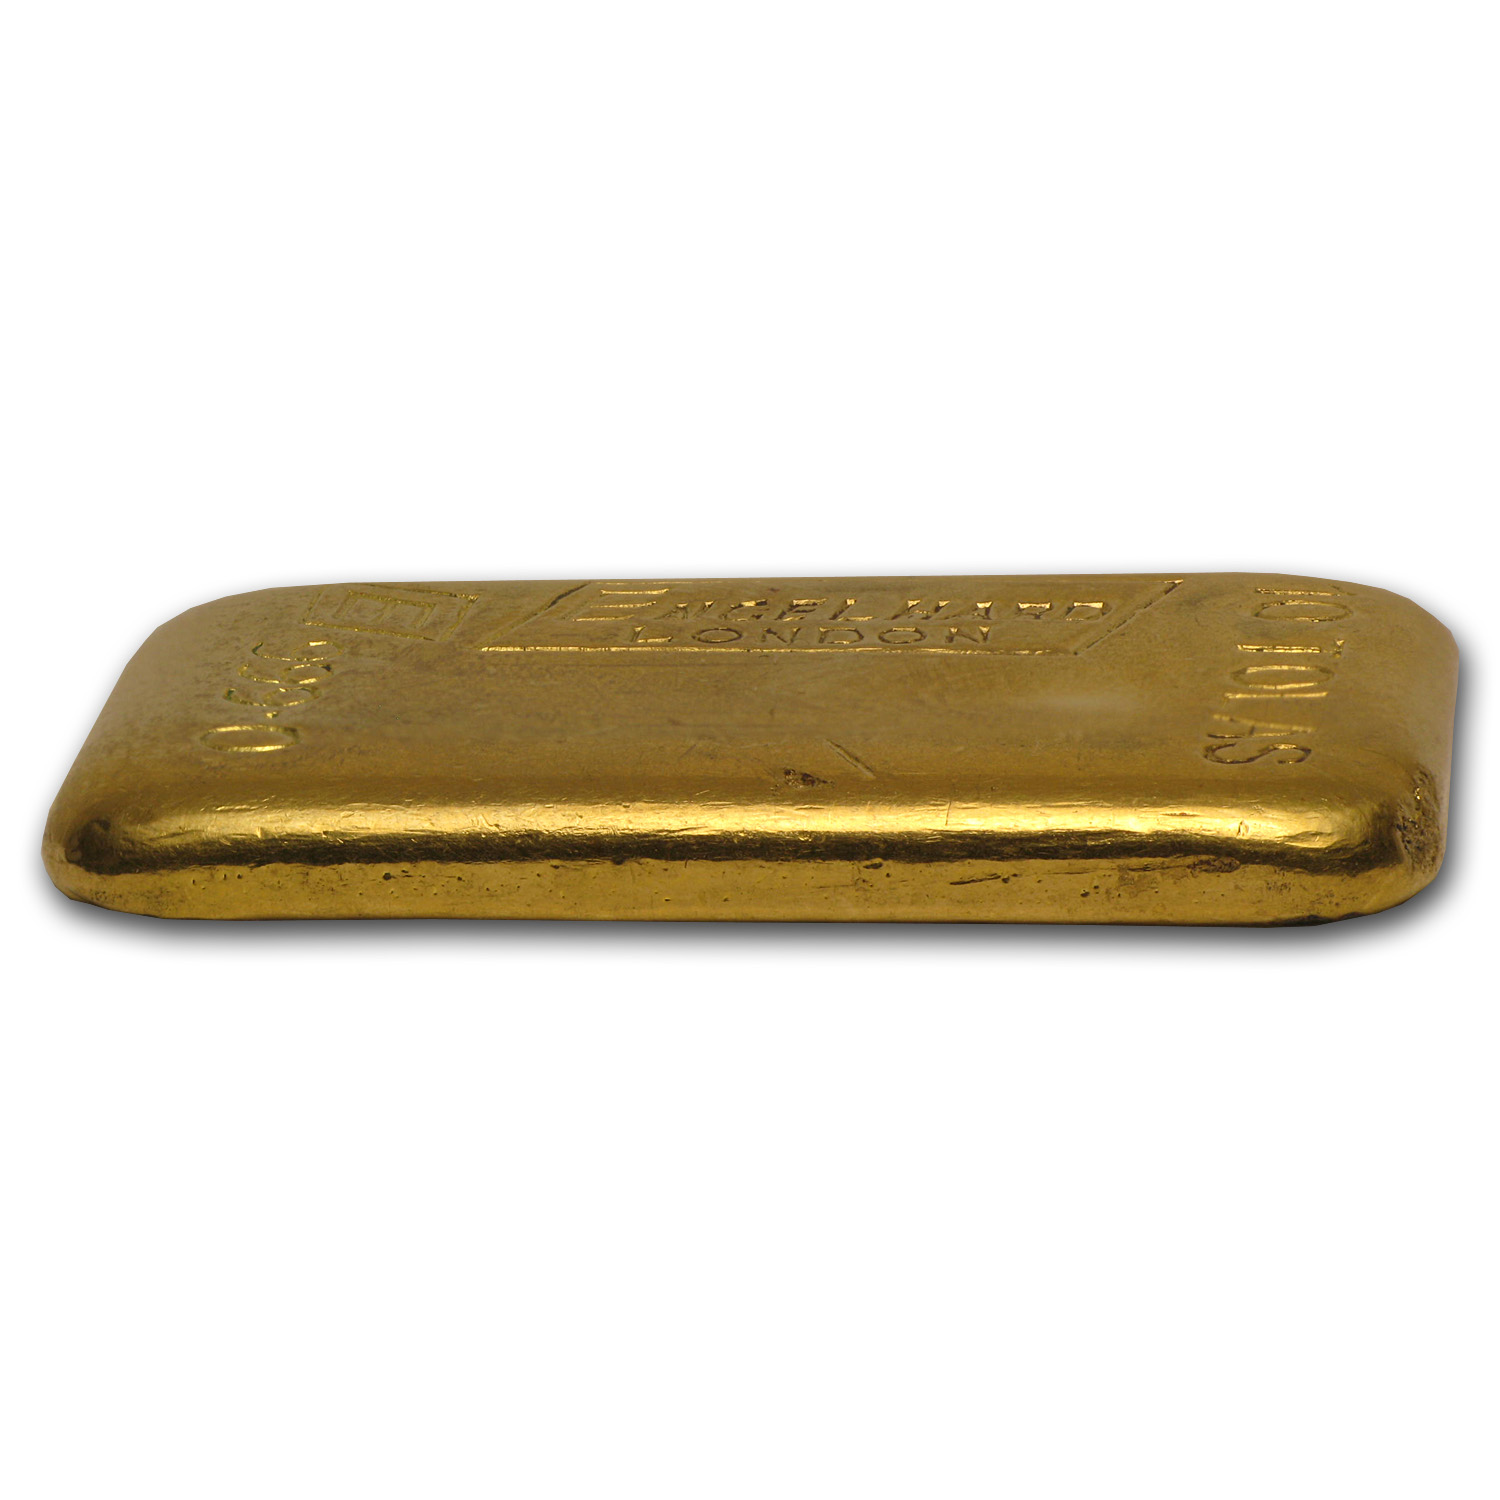 10 Tolas Gold Bars - Engelhard-London (Poured, 3.75 oz)